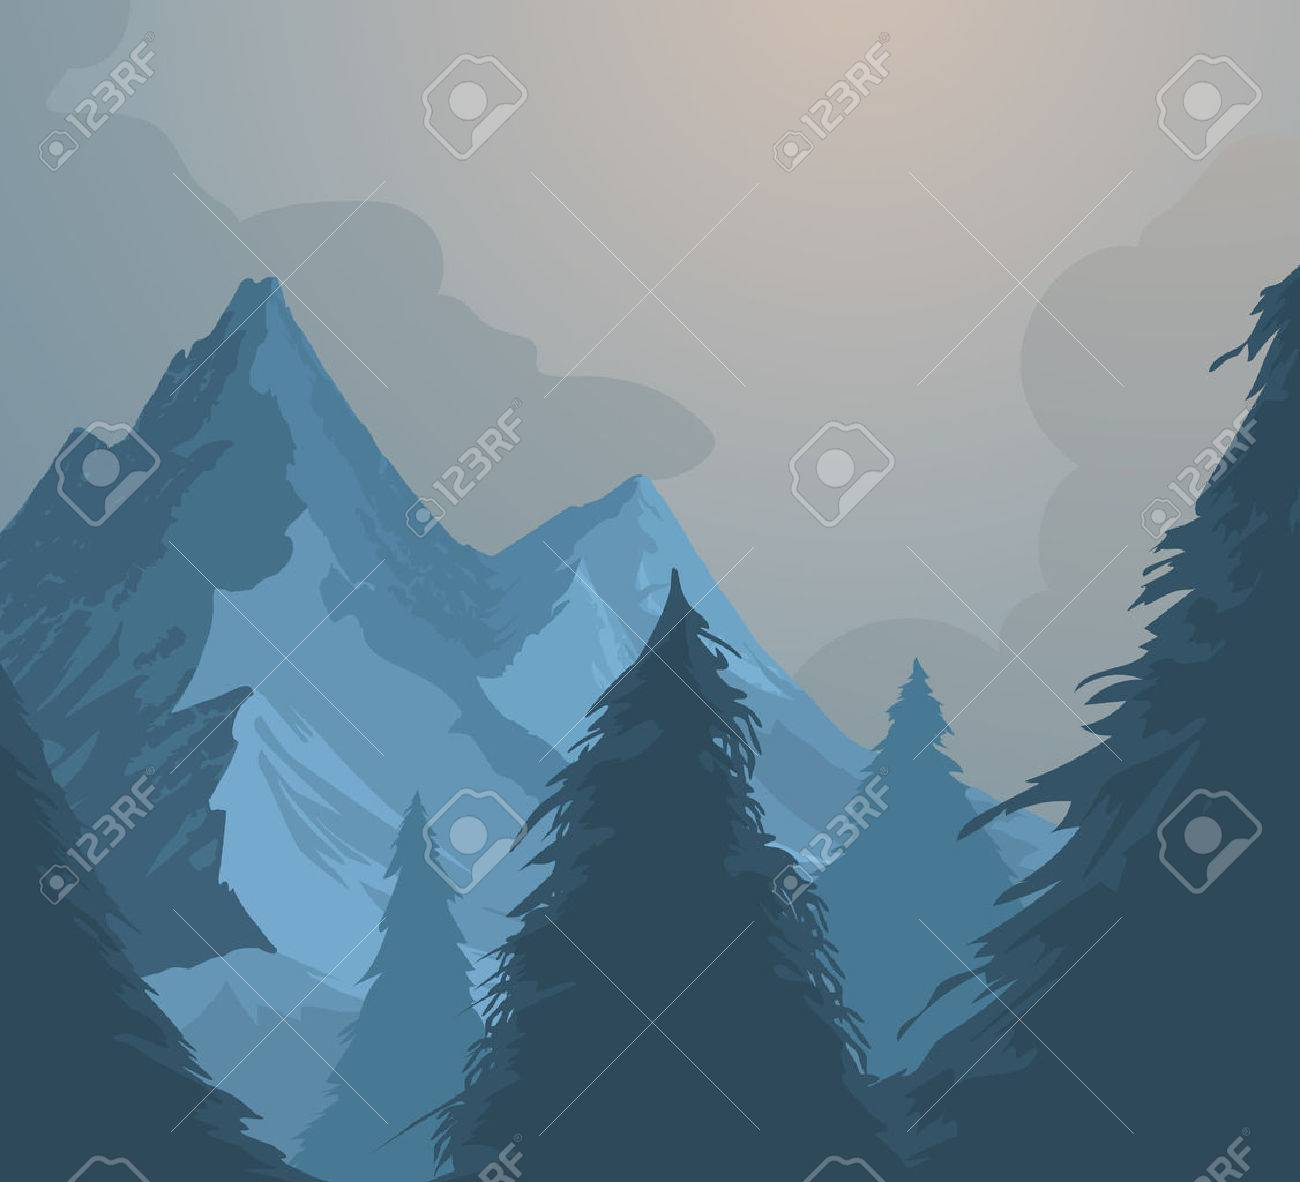 Mountains and forest vector nature landscape background Stock Vector - 56476831